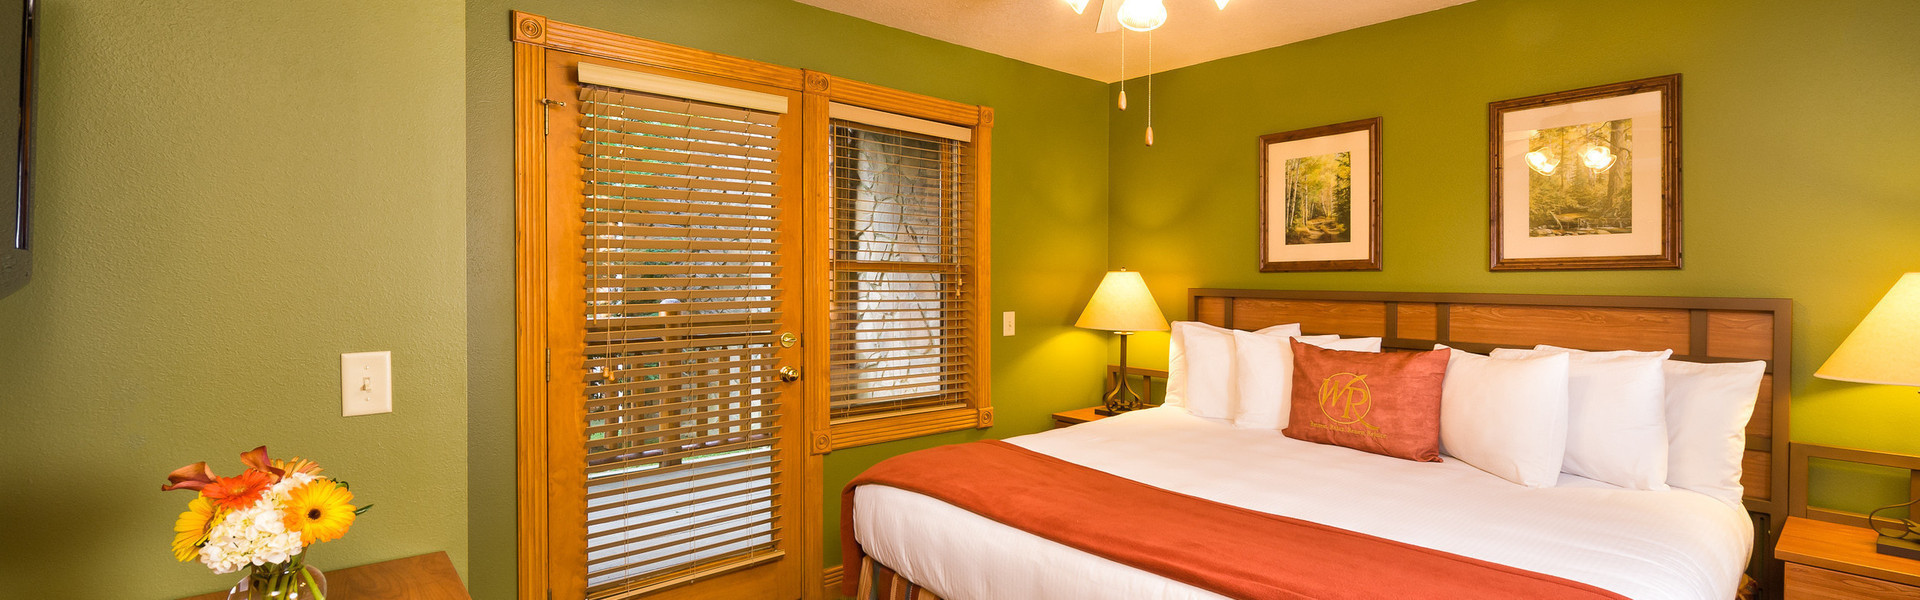 1 Bedroom Suites at Our Gatlinburg Resort near the Smoky Mountains | Spacious Bedroom